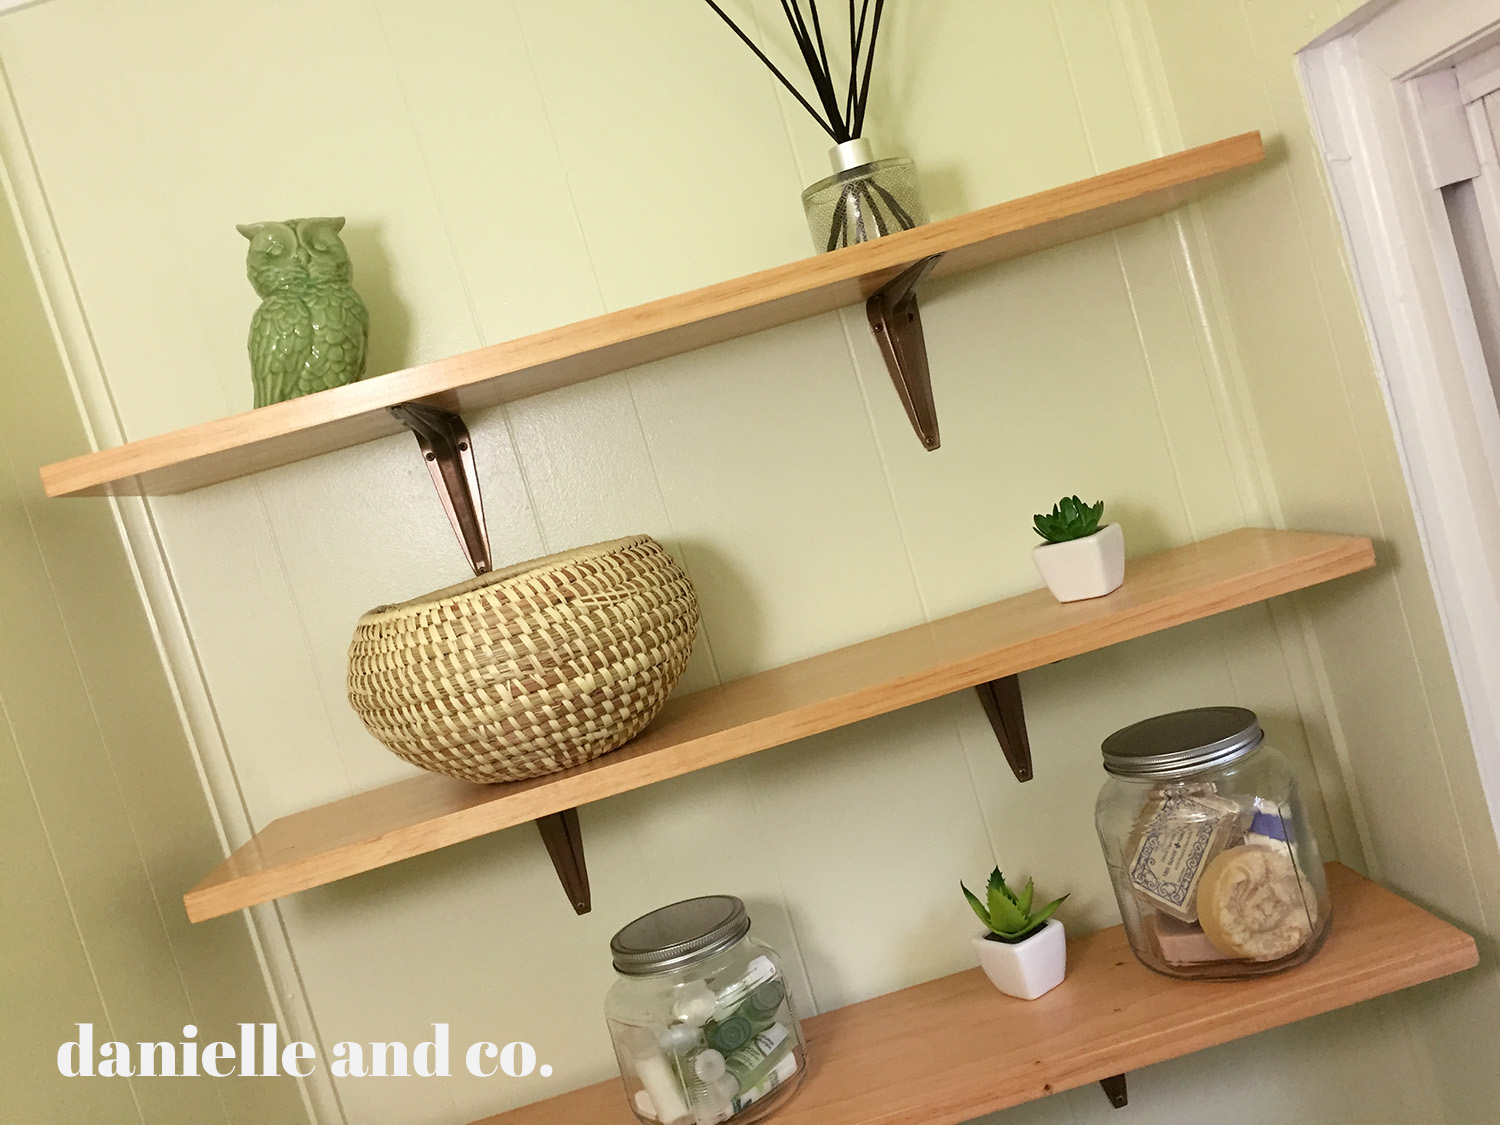 DIY bathroom shelving = so much storage, and pretty too! From danielleandco.com